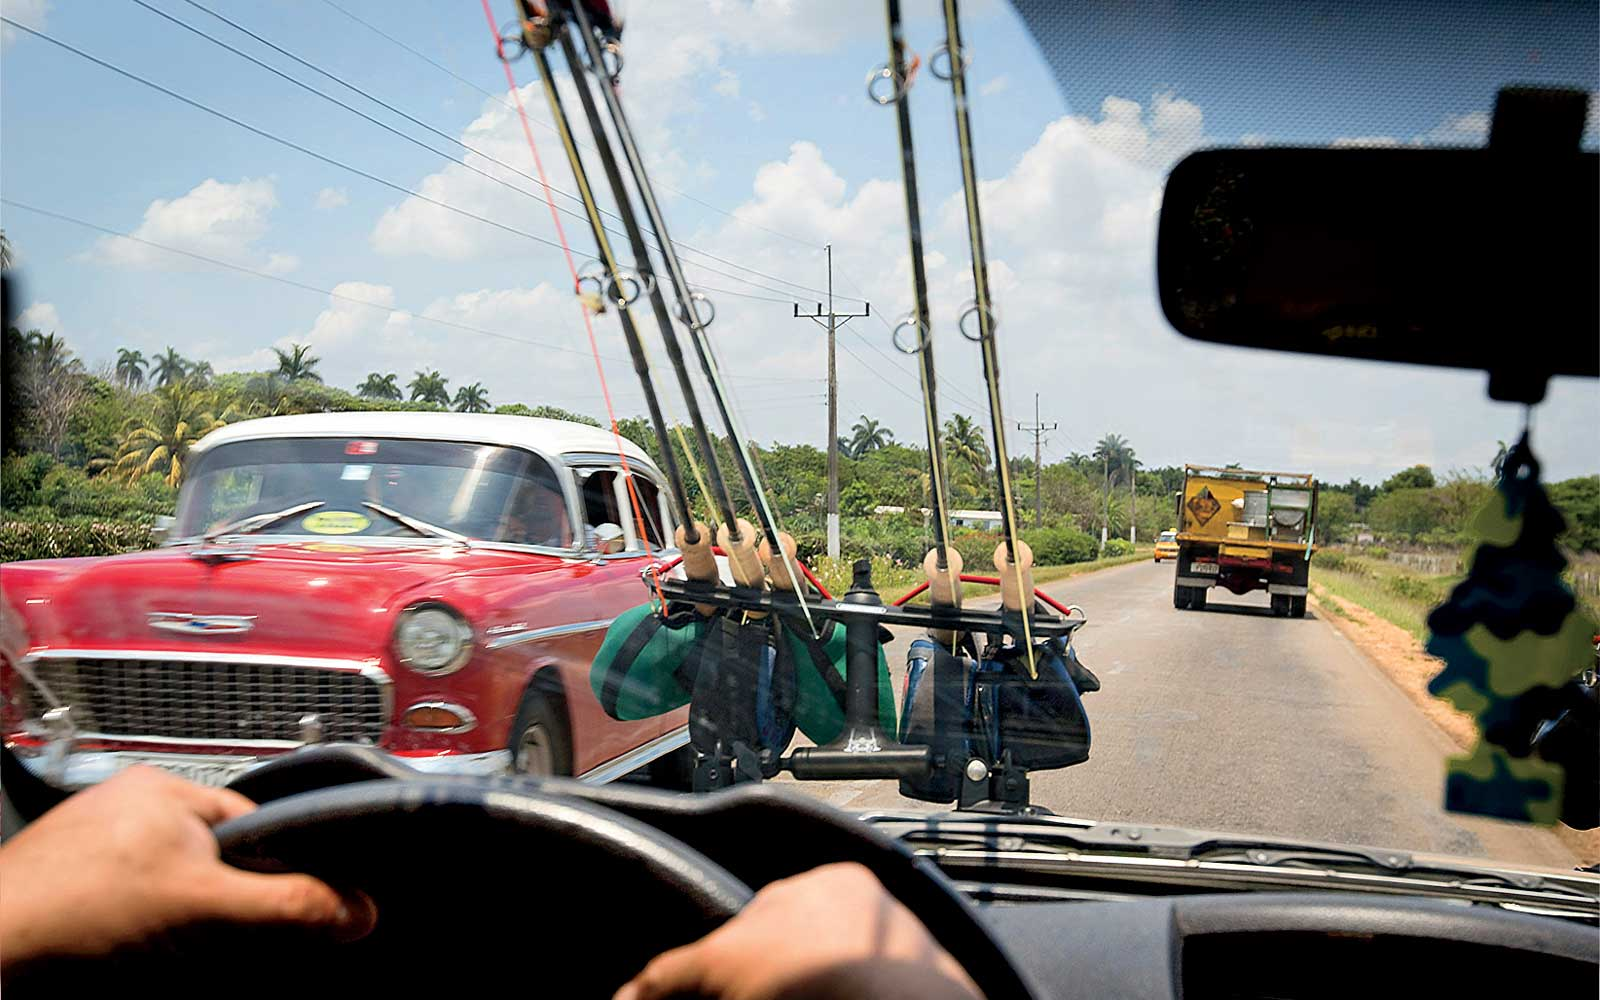 Fly fishing gear strapped to a car in Cuba